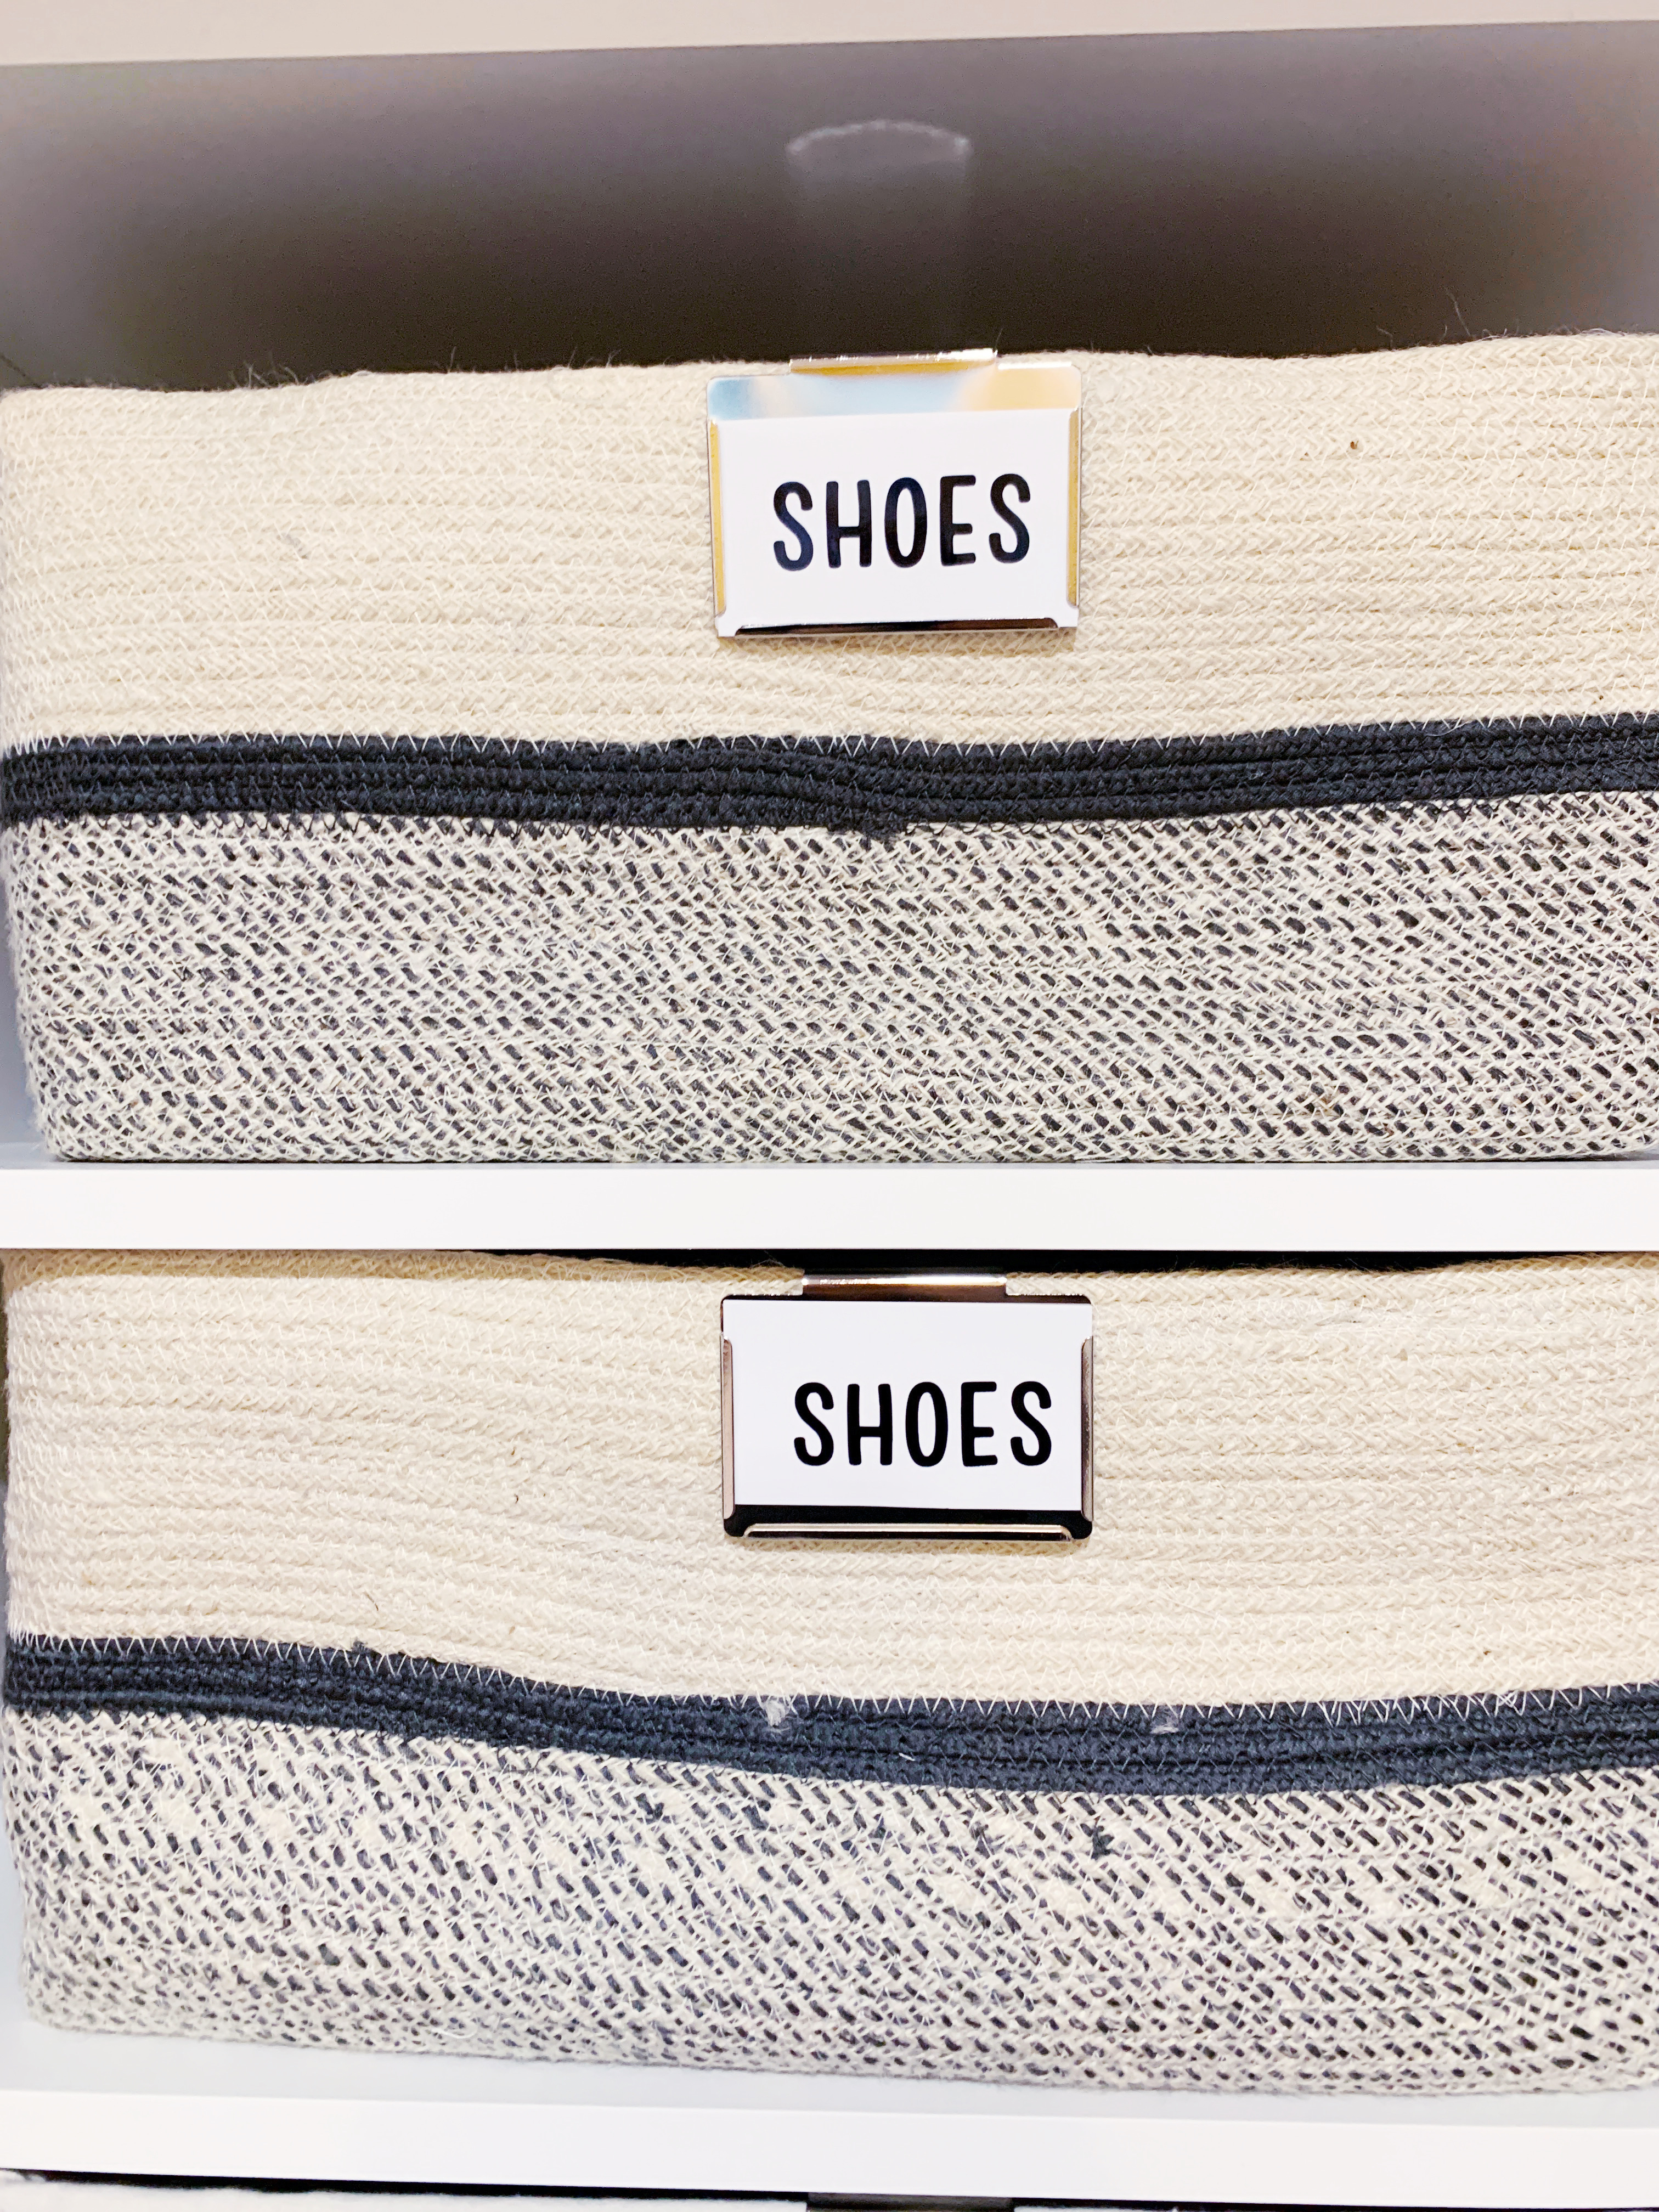 These Nova Woven Storage bins are durable and perfect for shoes